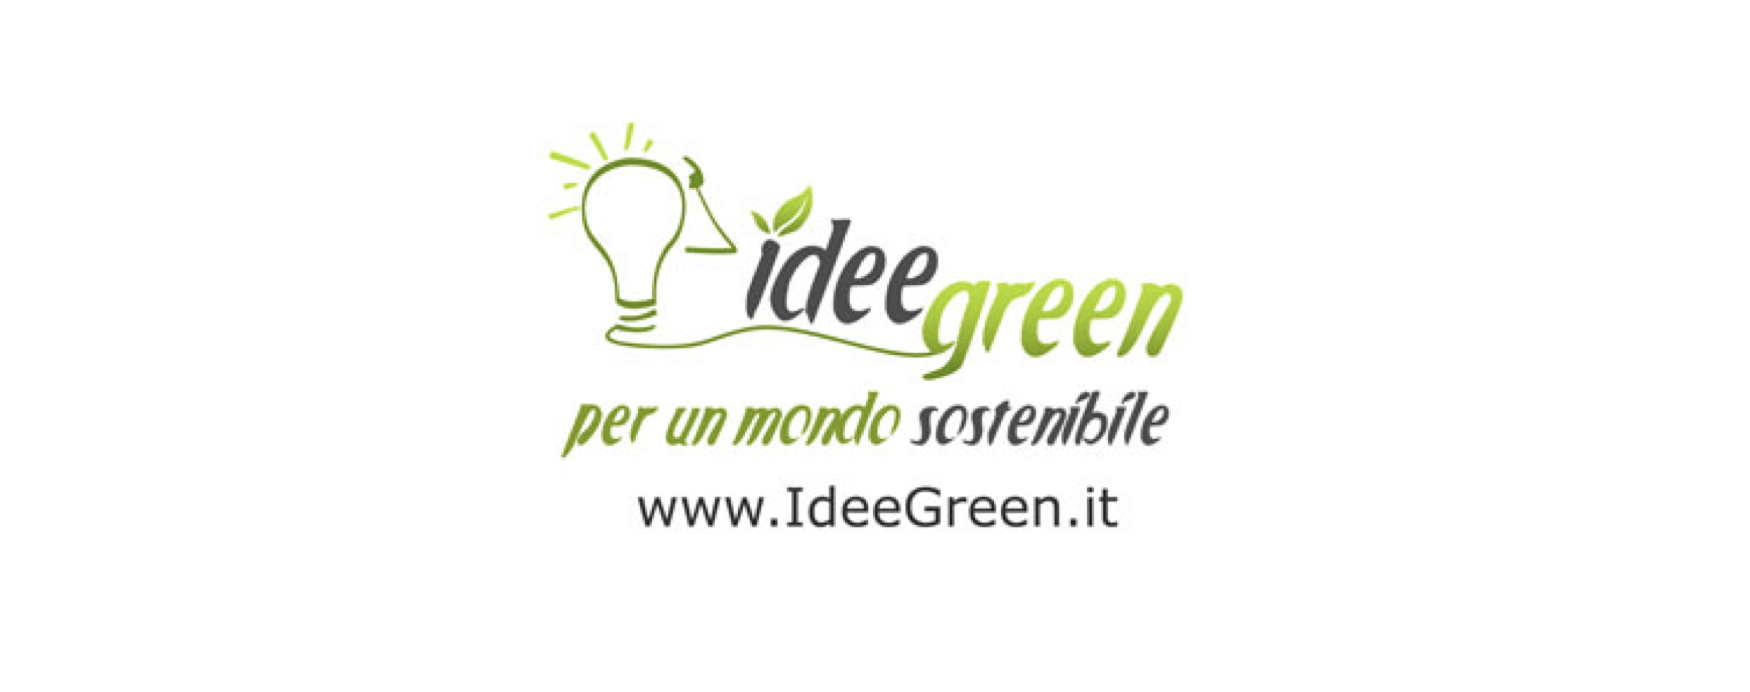 IdeeGreen Web